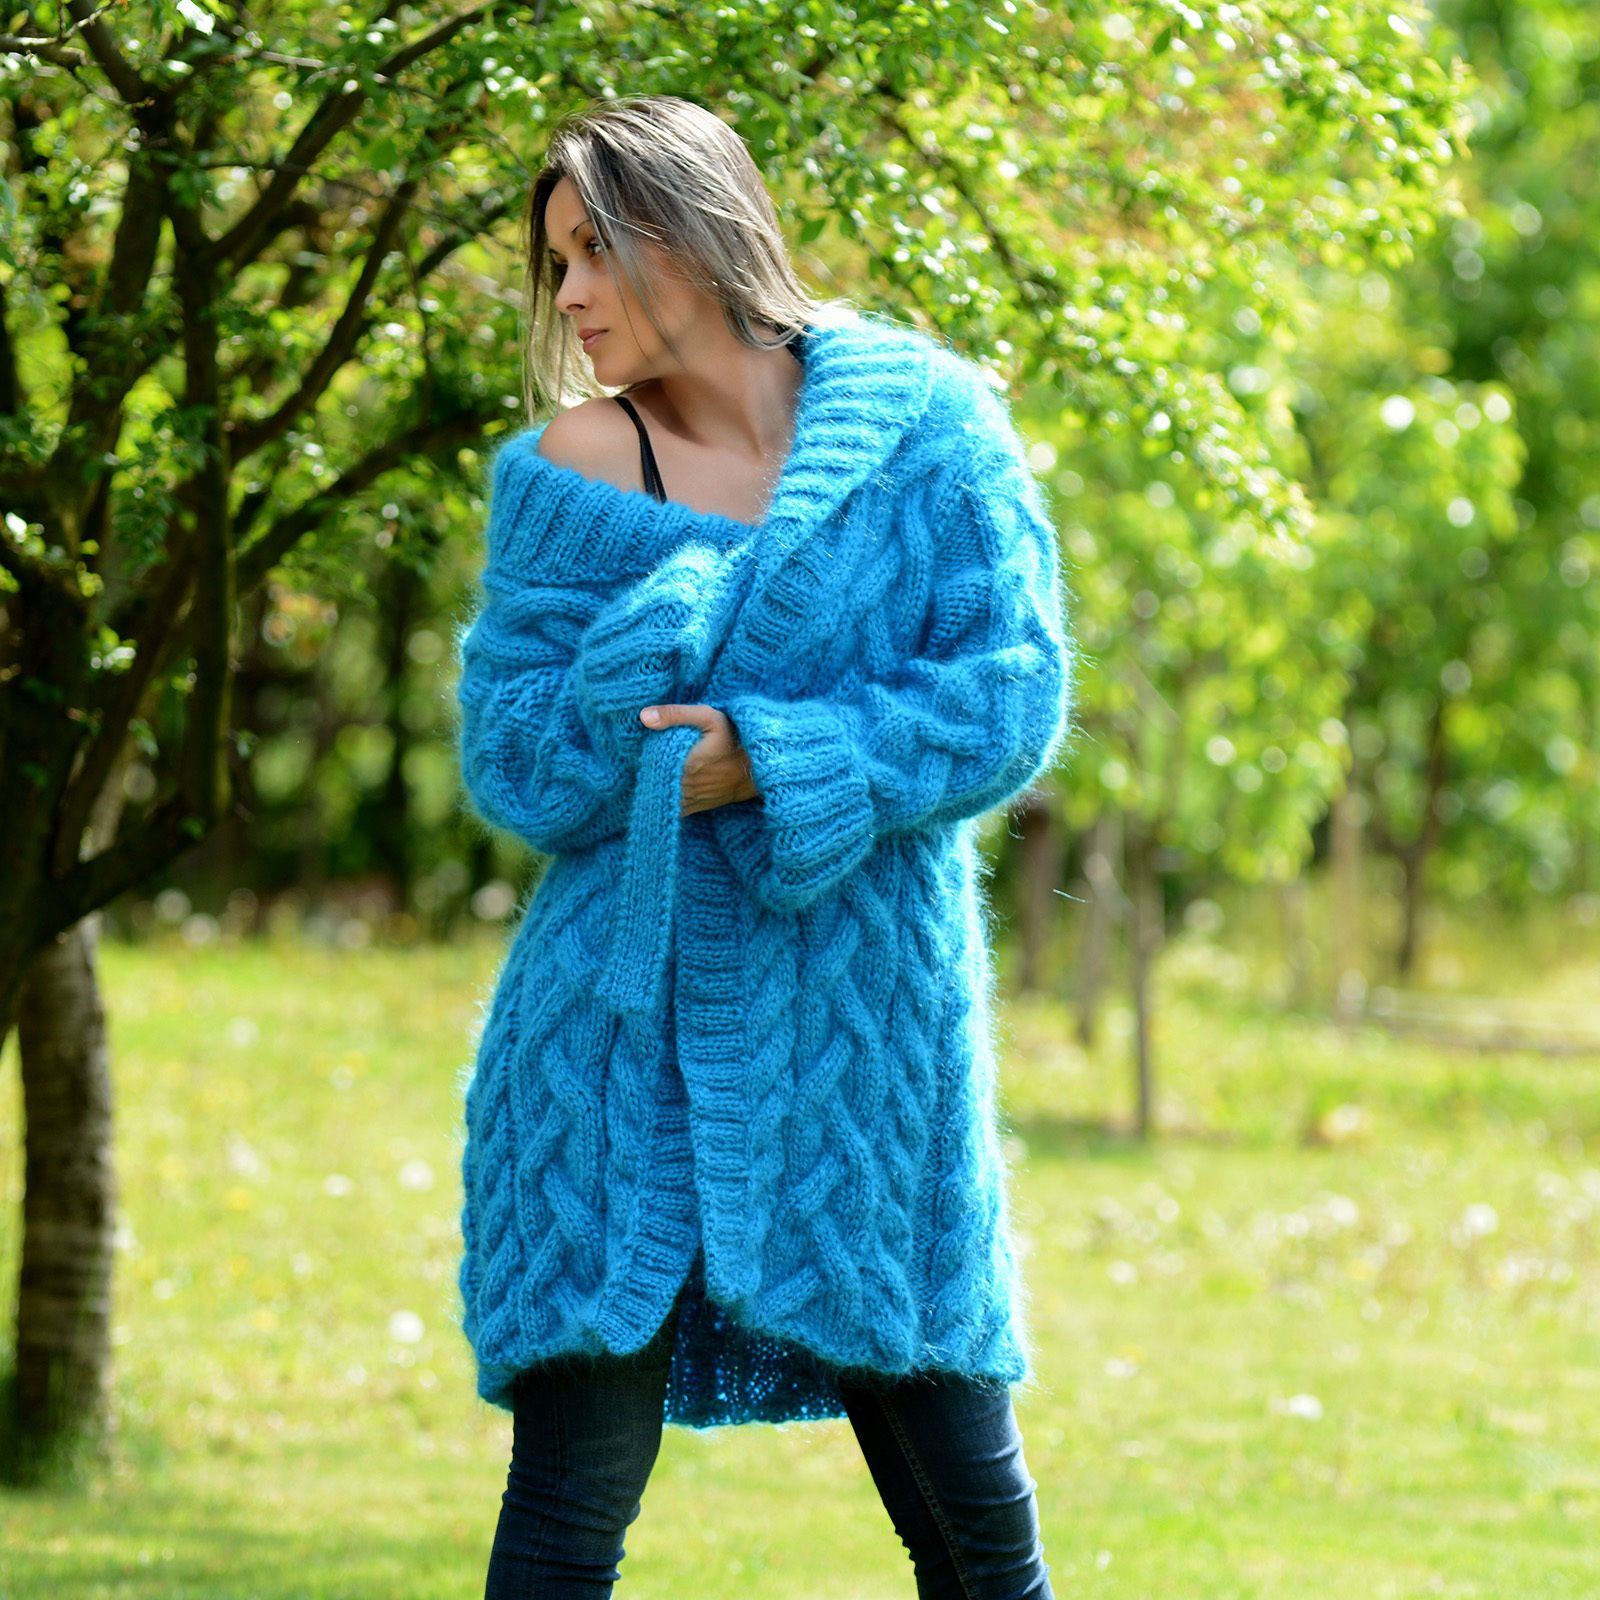 Turquoise shawl sweater coat - Extravagantza